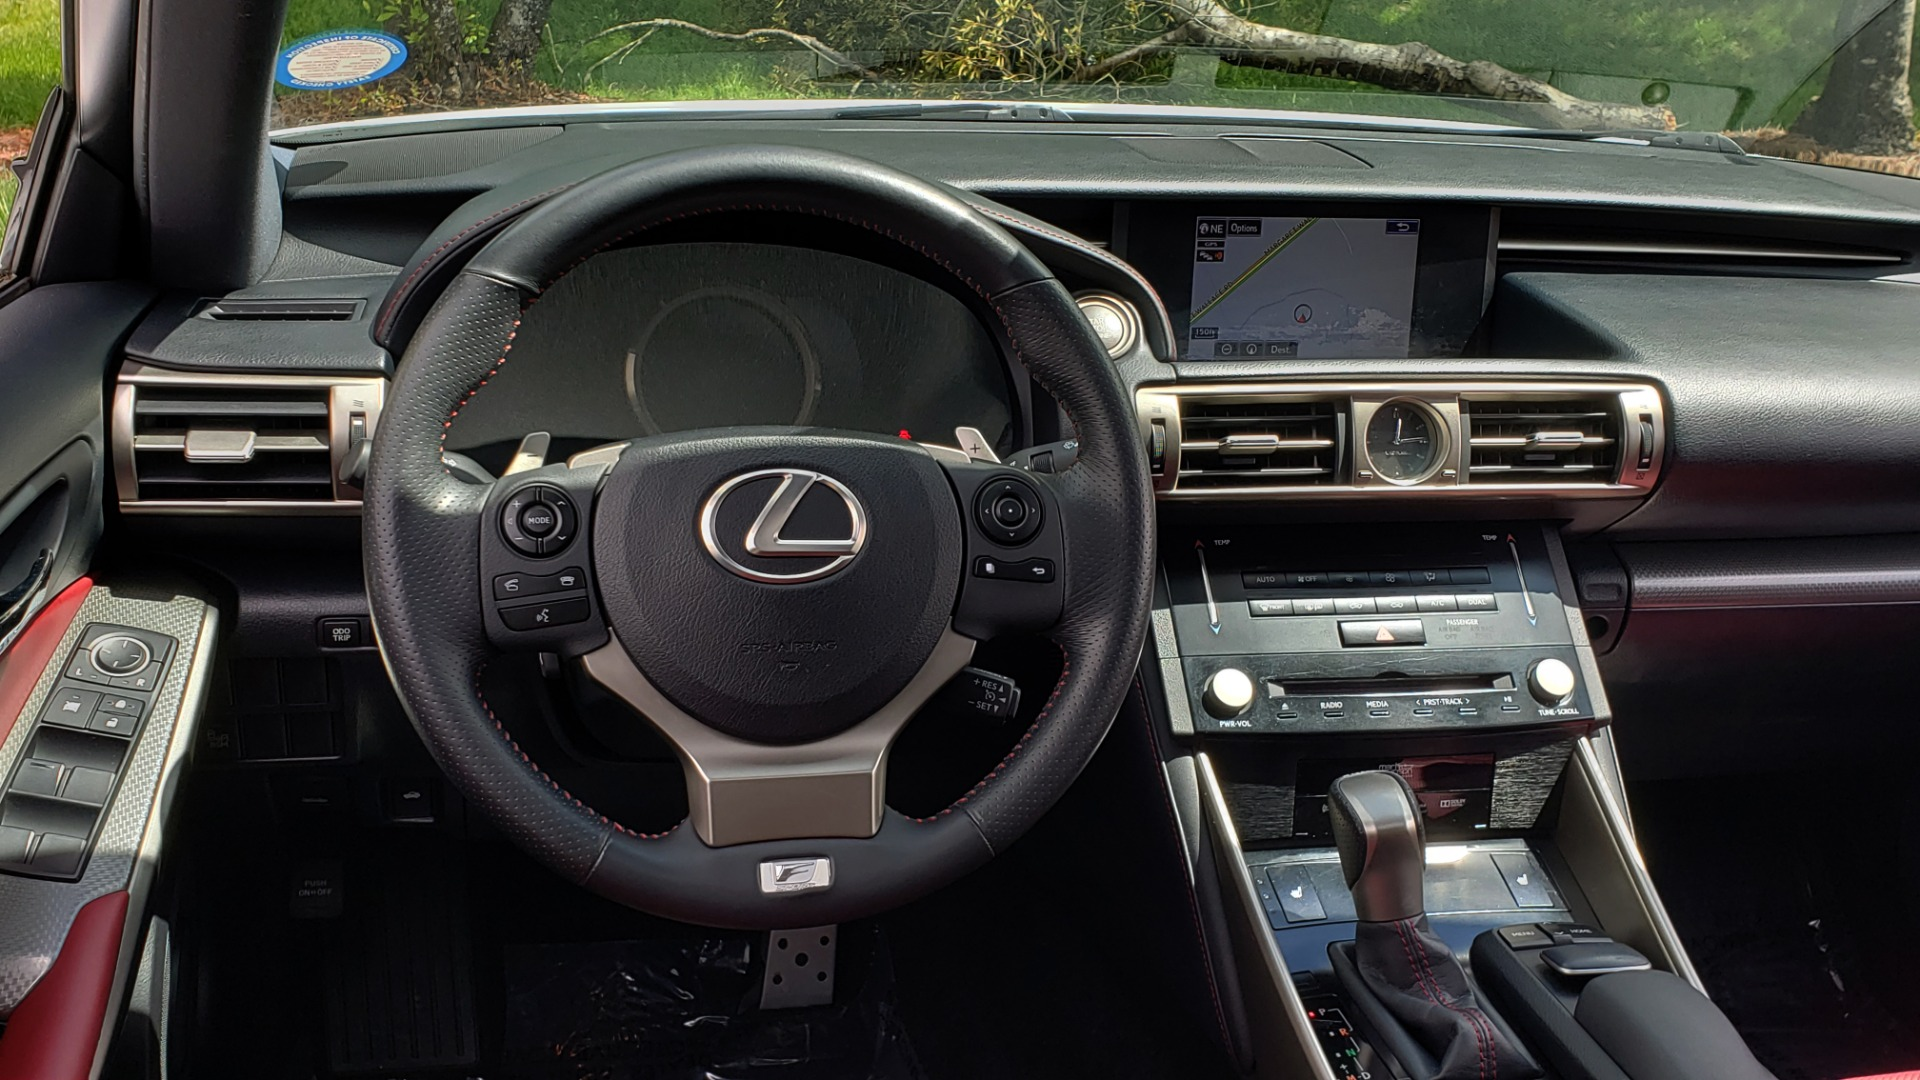 Used 2014 Lexus IS 350 F-SPORT / NAV / SUNROOF / REARVIEW / BSM / MARK LEV SND for sale Sold at Formula Imports in Charlotte NC 28227 34